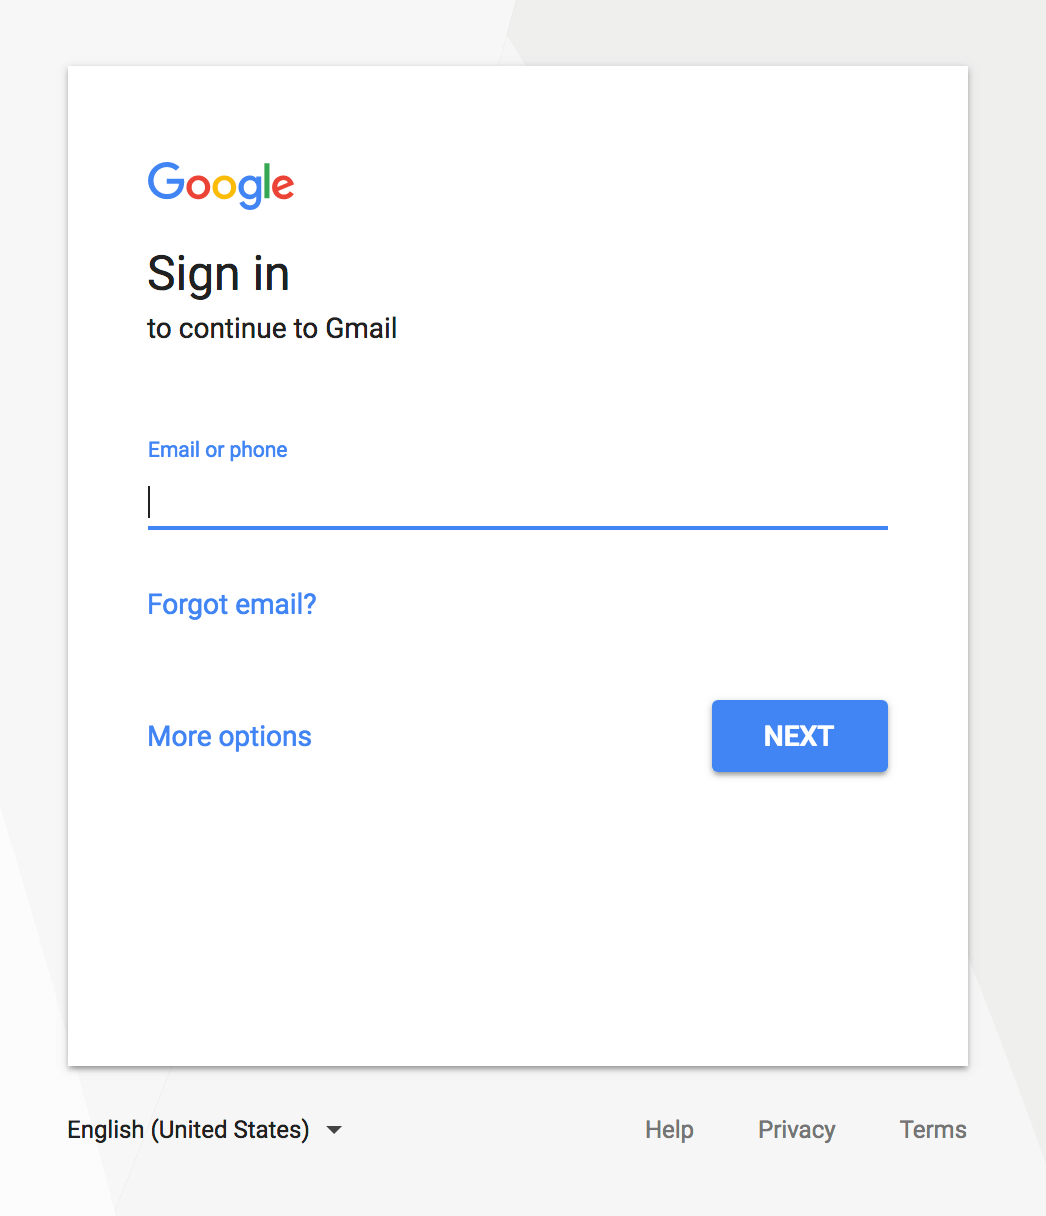 Example of a shadow effect applied to a button in Google's design